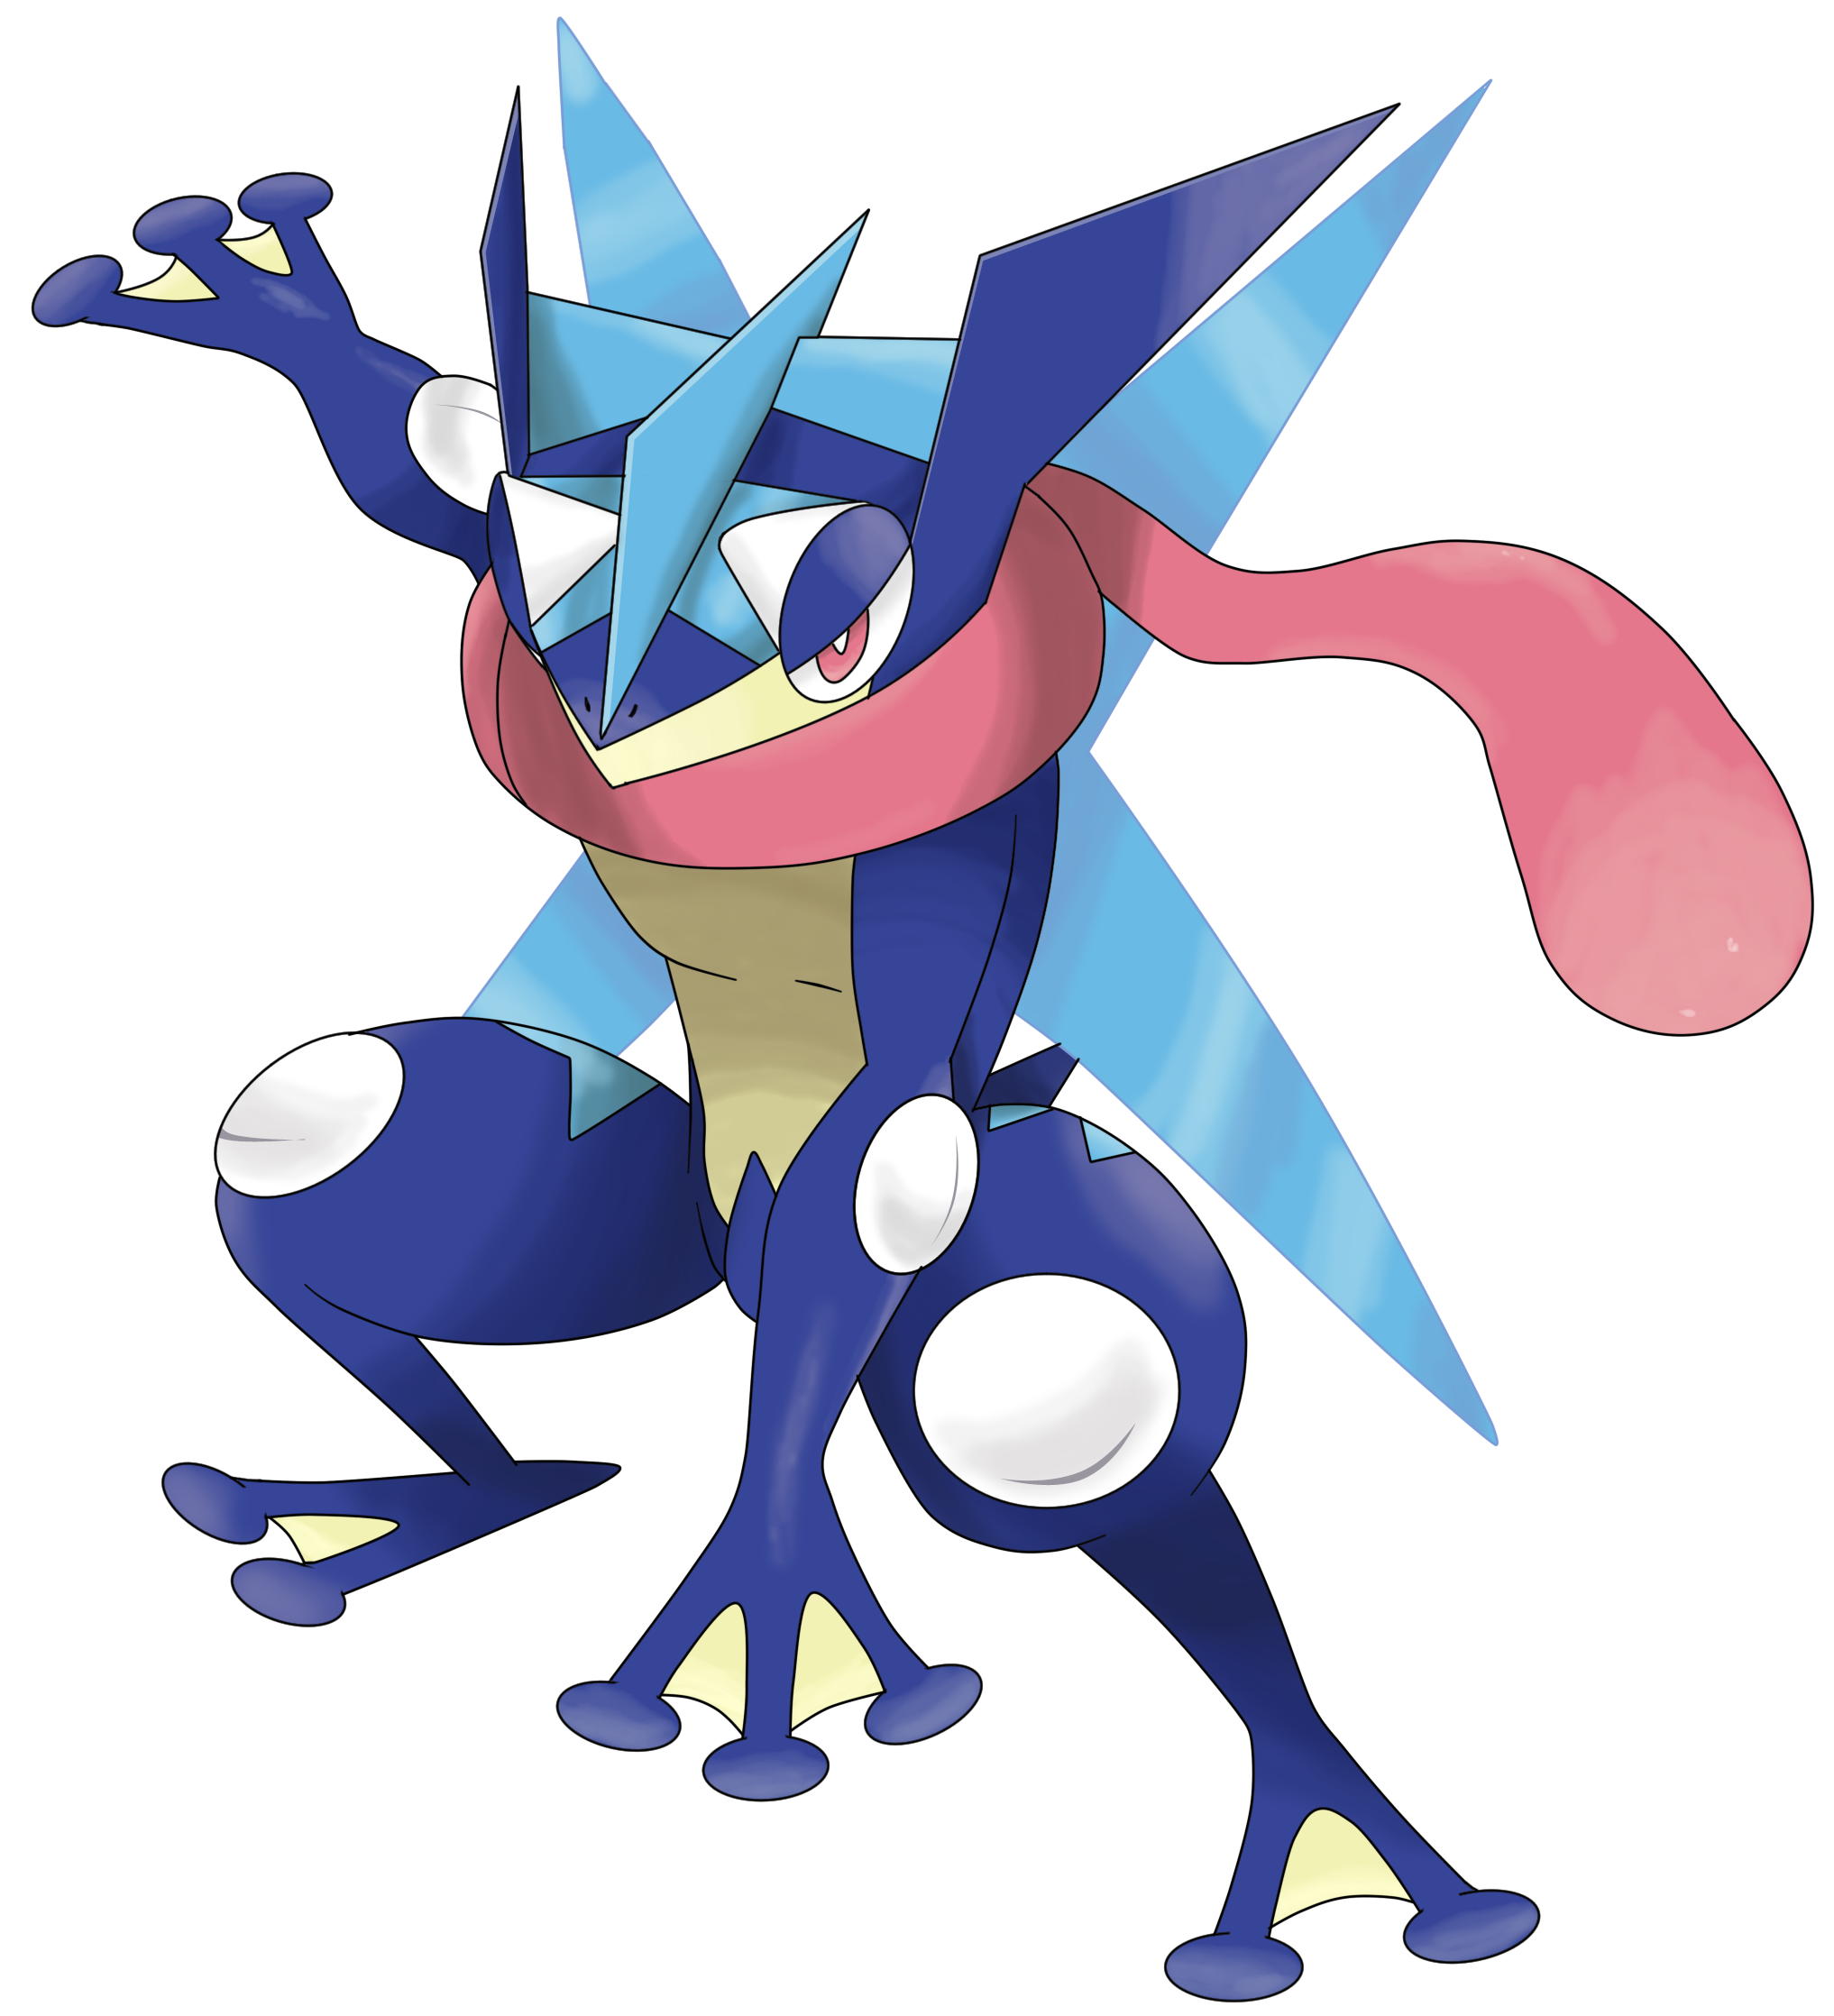 rainbow_greninja_copia_by_waito_chan-dagsbn4.png